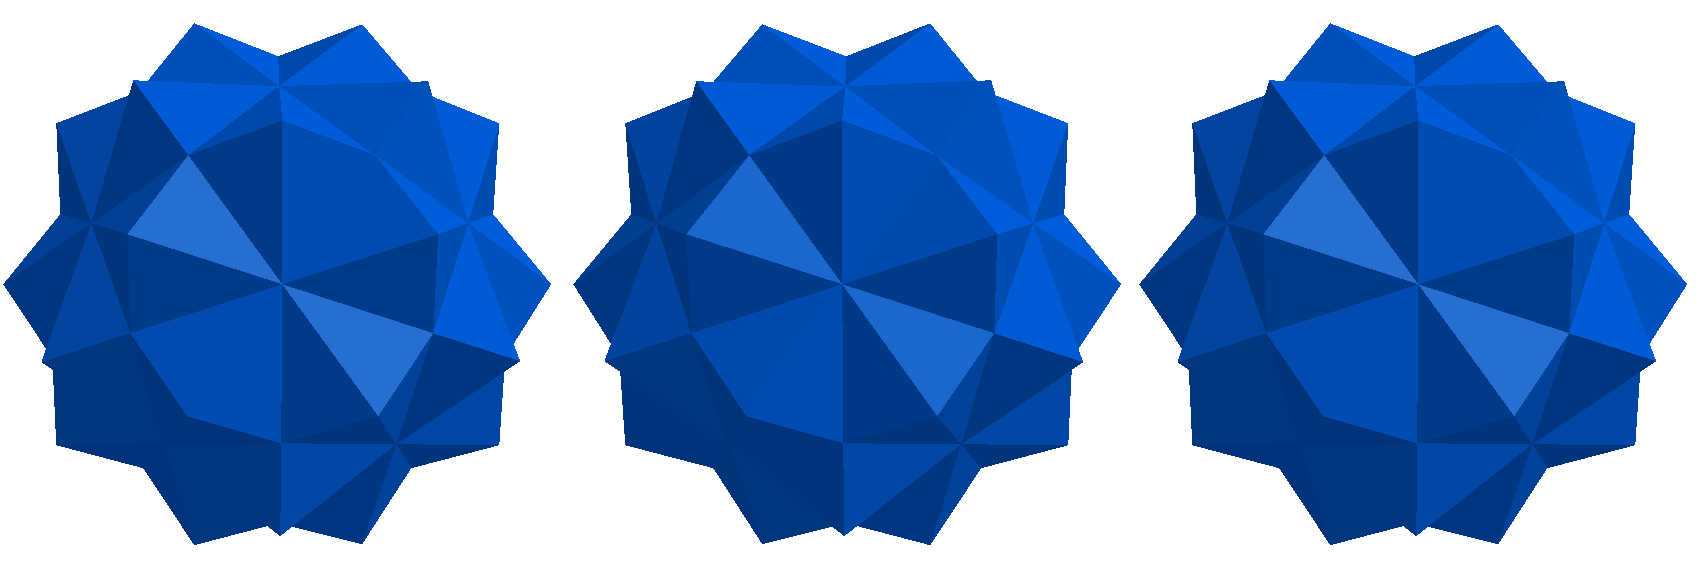 600_decagonicdodecahedron_sld_01D3000.png